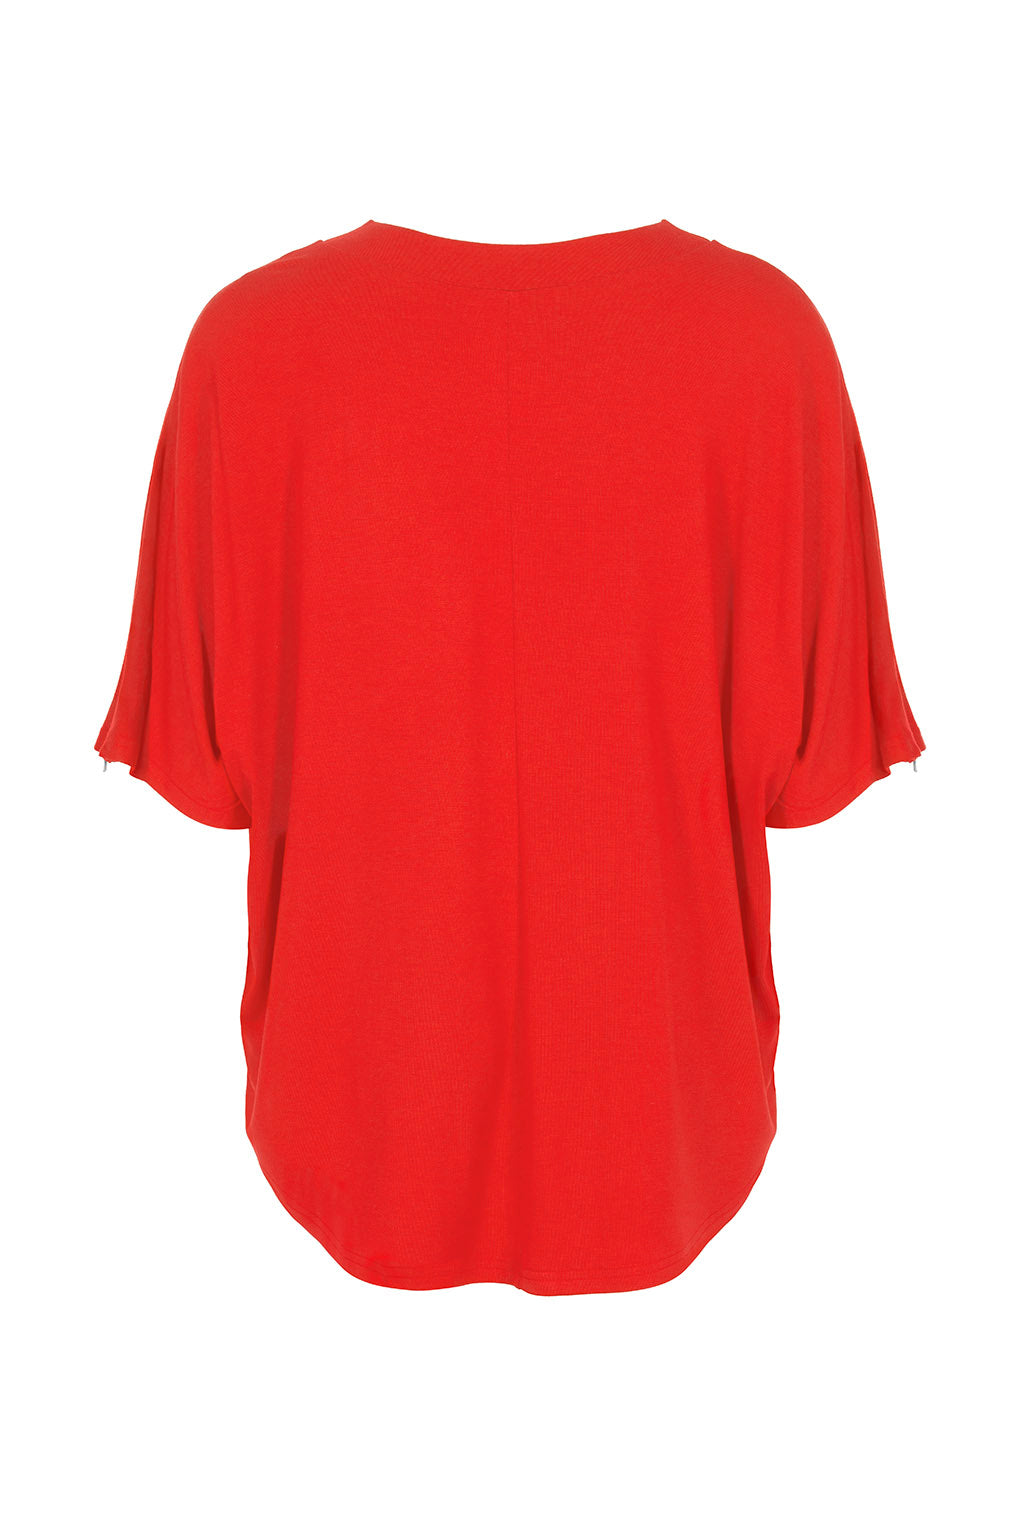 Nursing T-shirt in Red - Zip Breastfeeding Access - Minerva by Sarka London - Front View